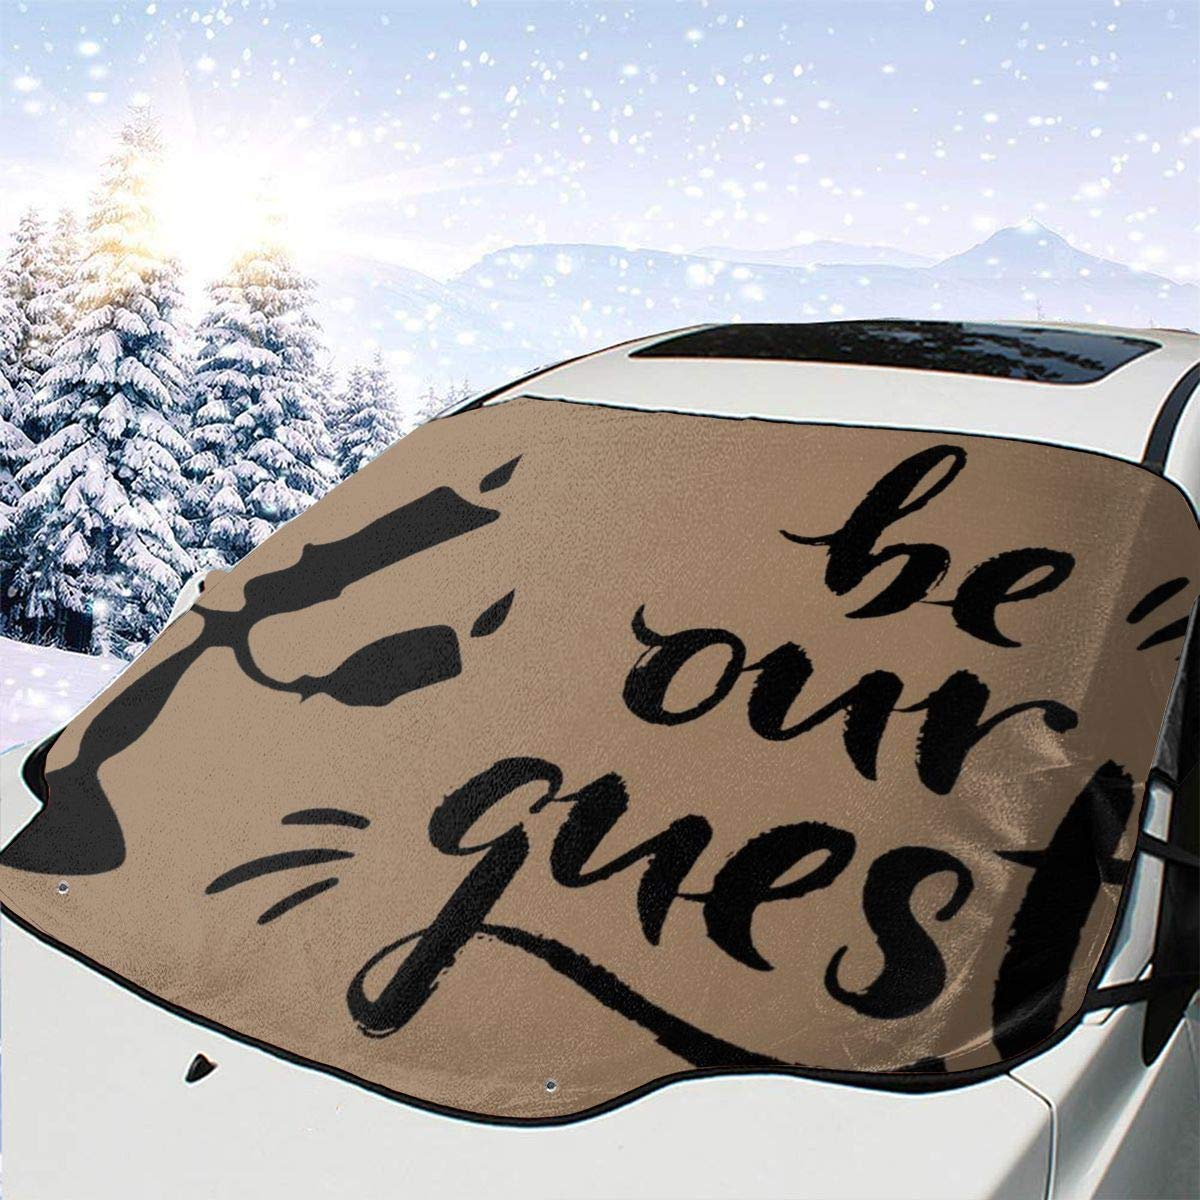 Durable Automotive Max Max 77% OFF 59% OFF Windshield Sunshades Windwhie Guest Our Auto